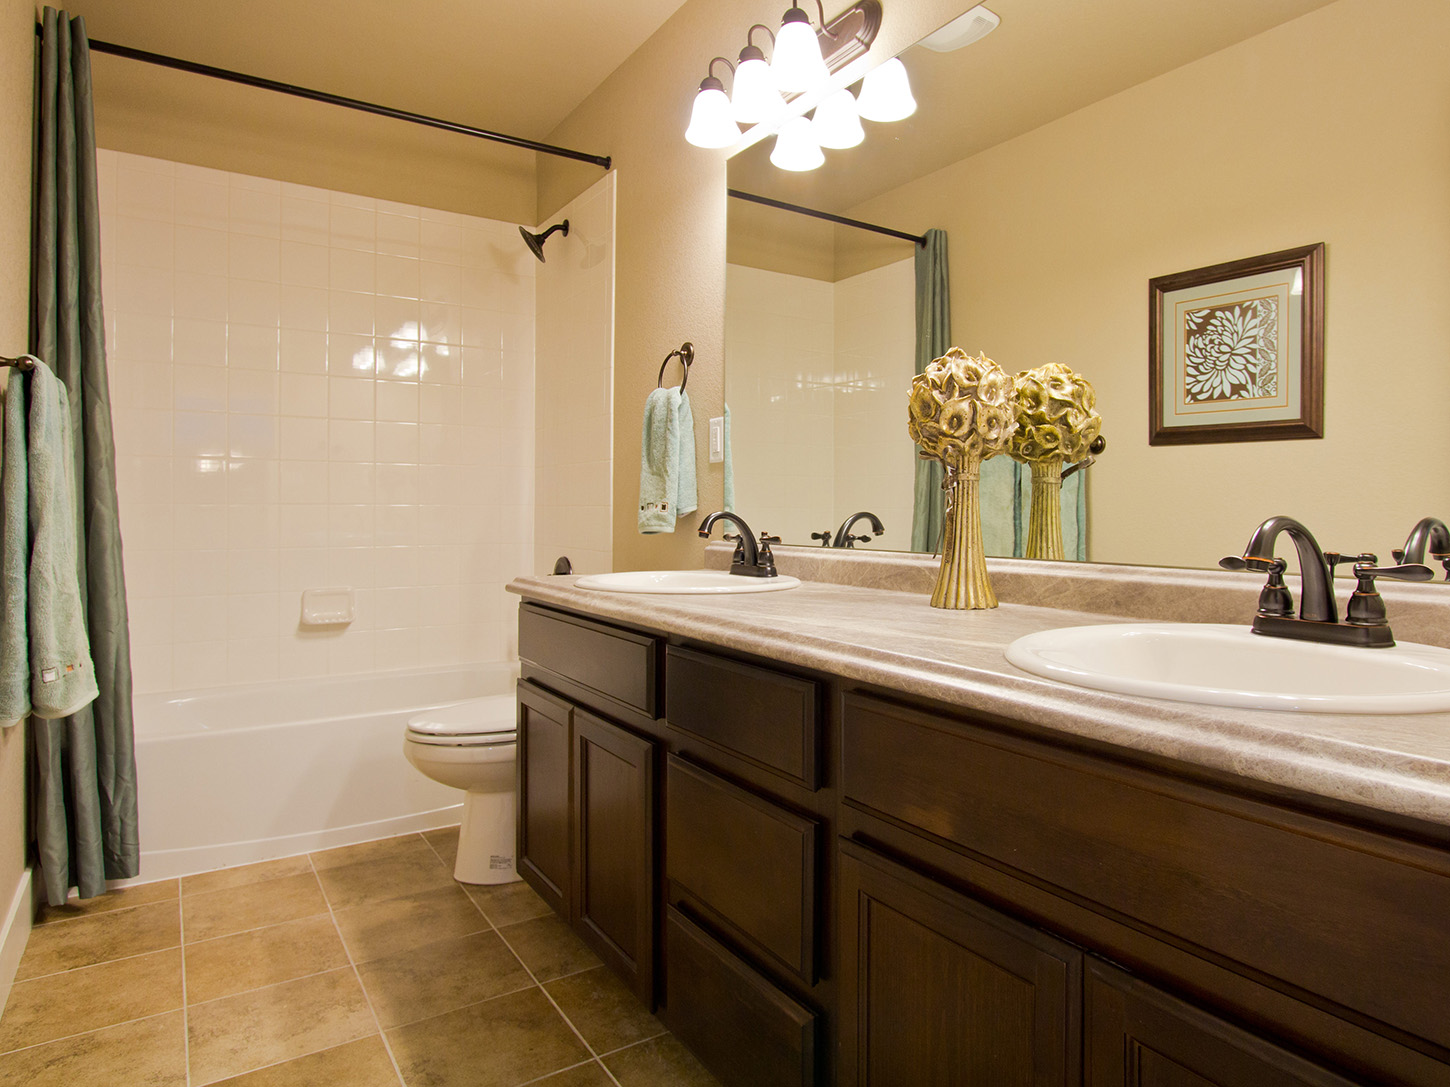 20-glendale-milliken-bathroom_202-new_20home_20builder